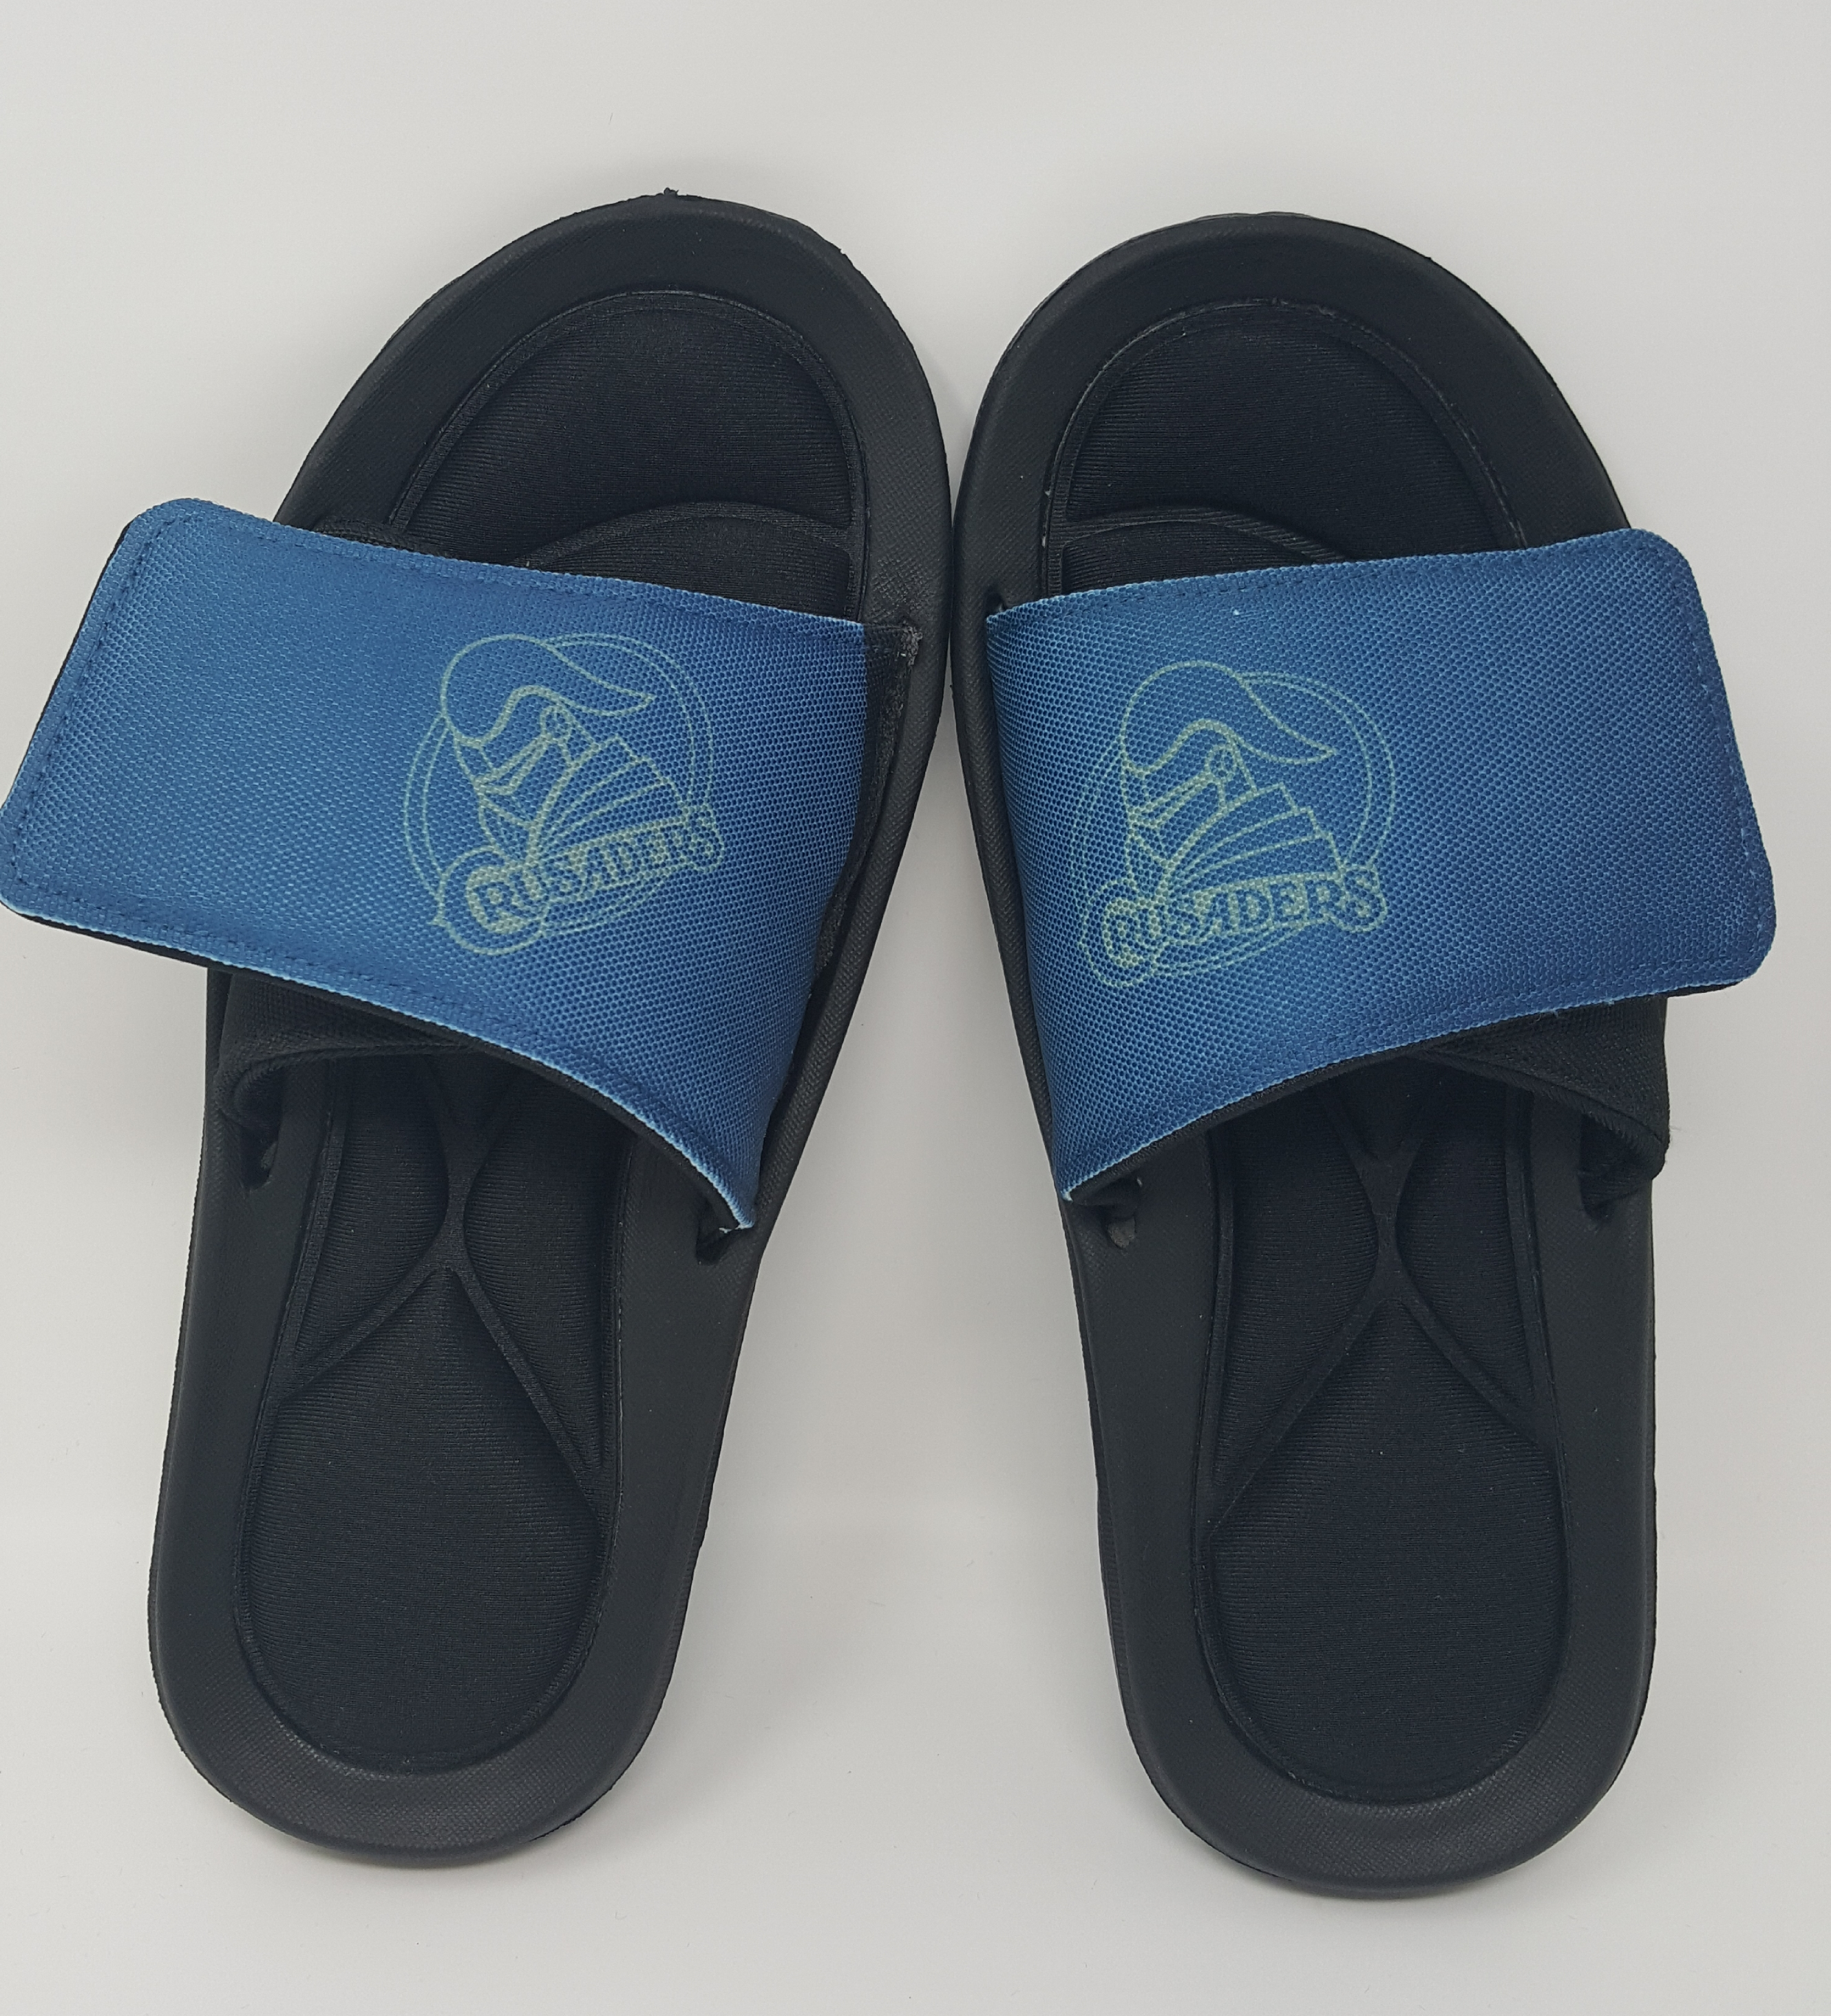 Slide Sandal (Sandal Sizes: XS - Women 5, Kid 4)